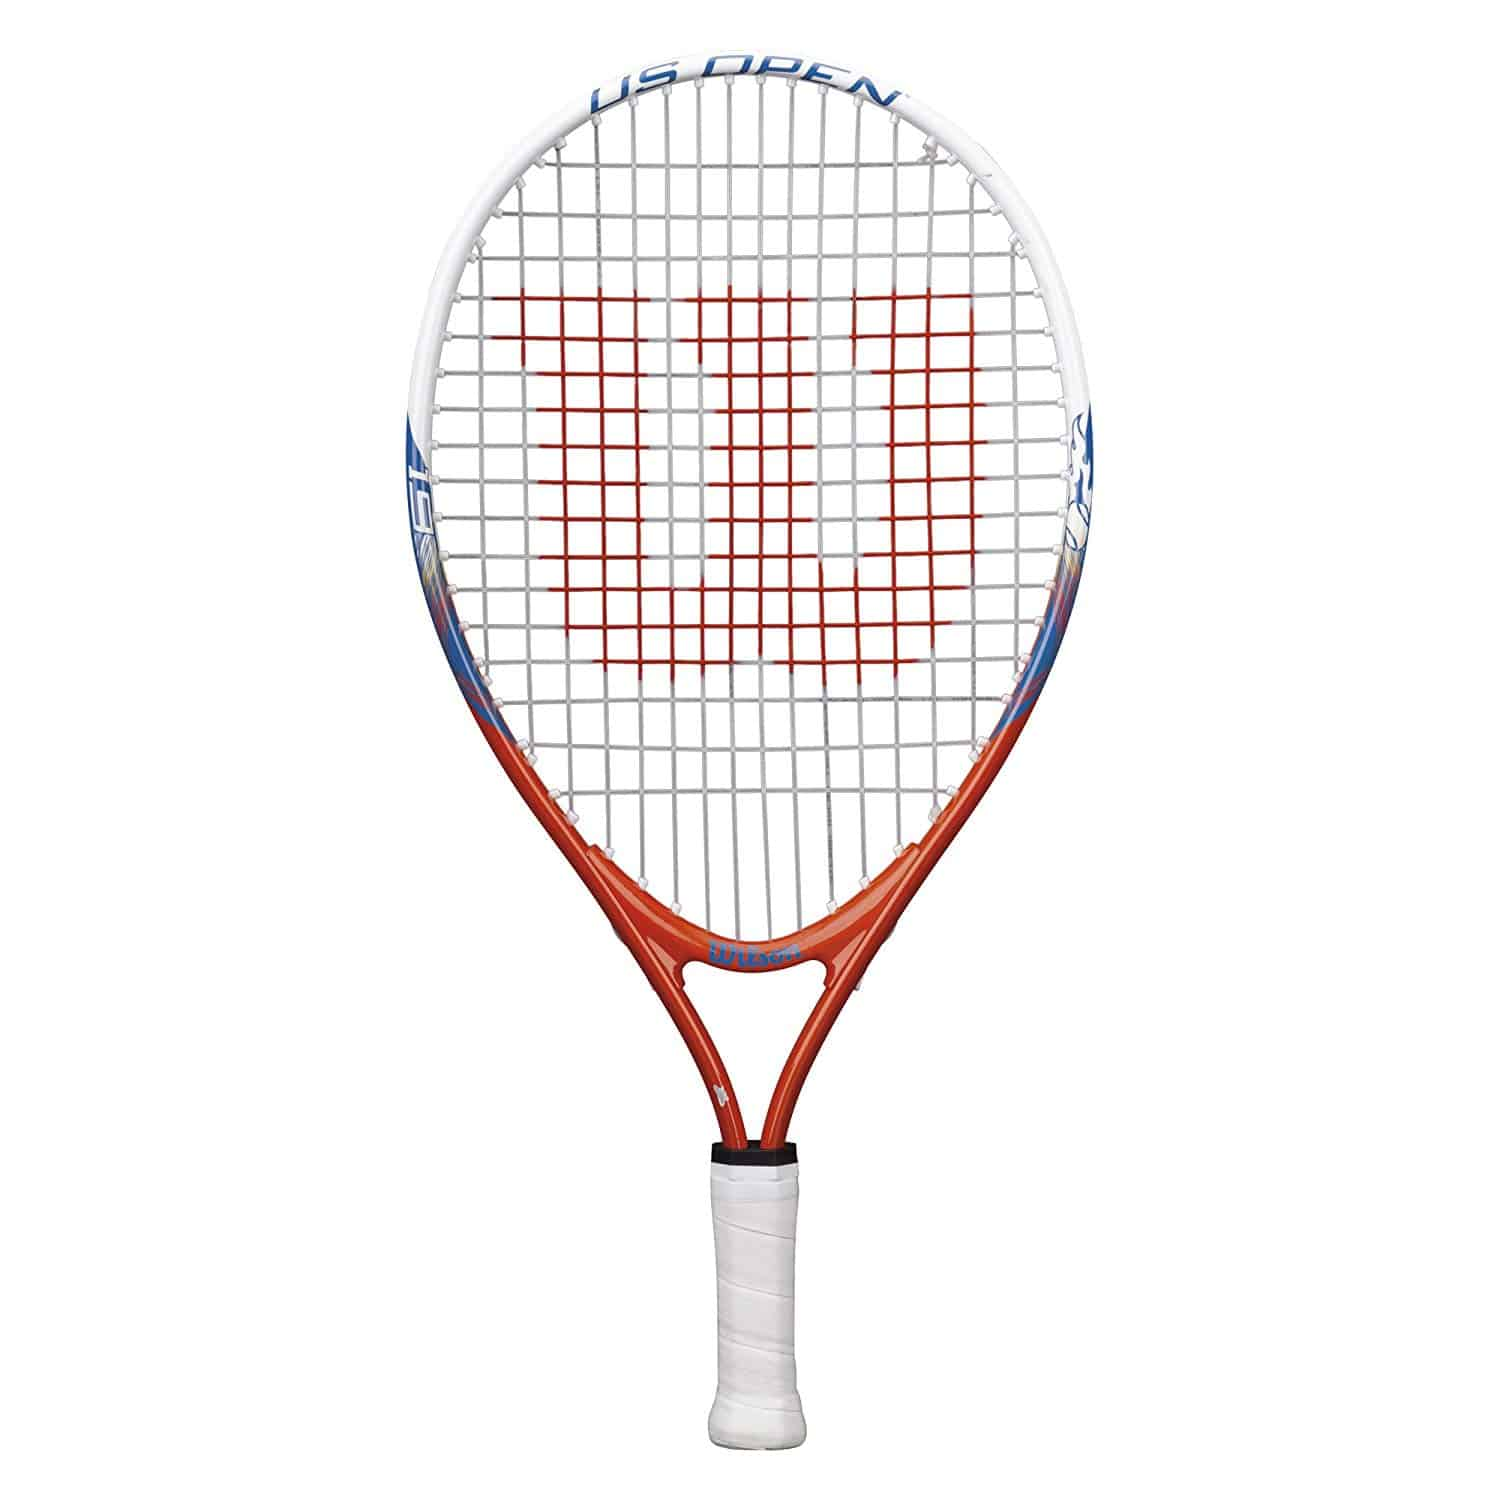 Get To The Wimbledon With This Tennis Racket